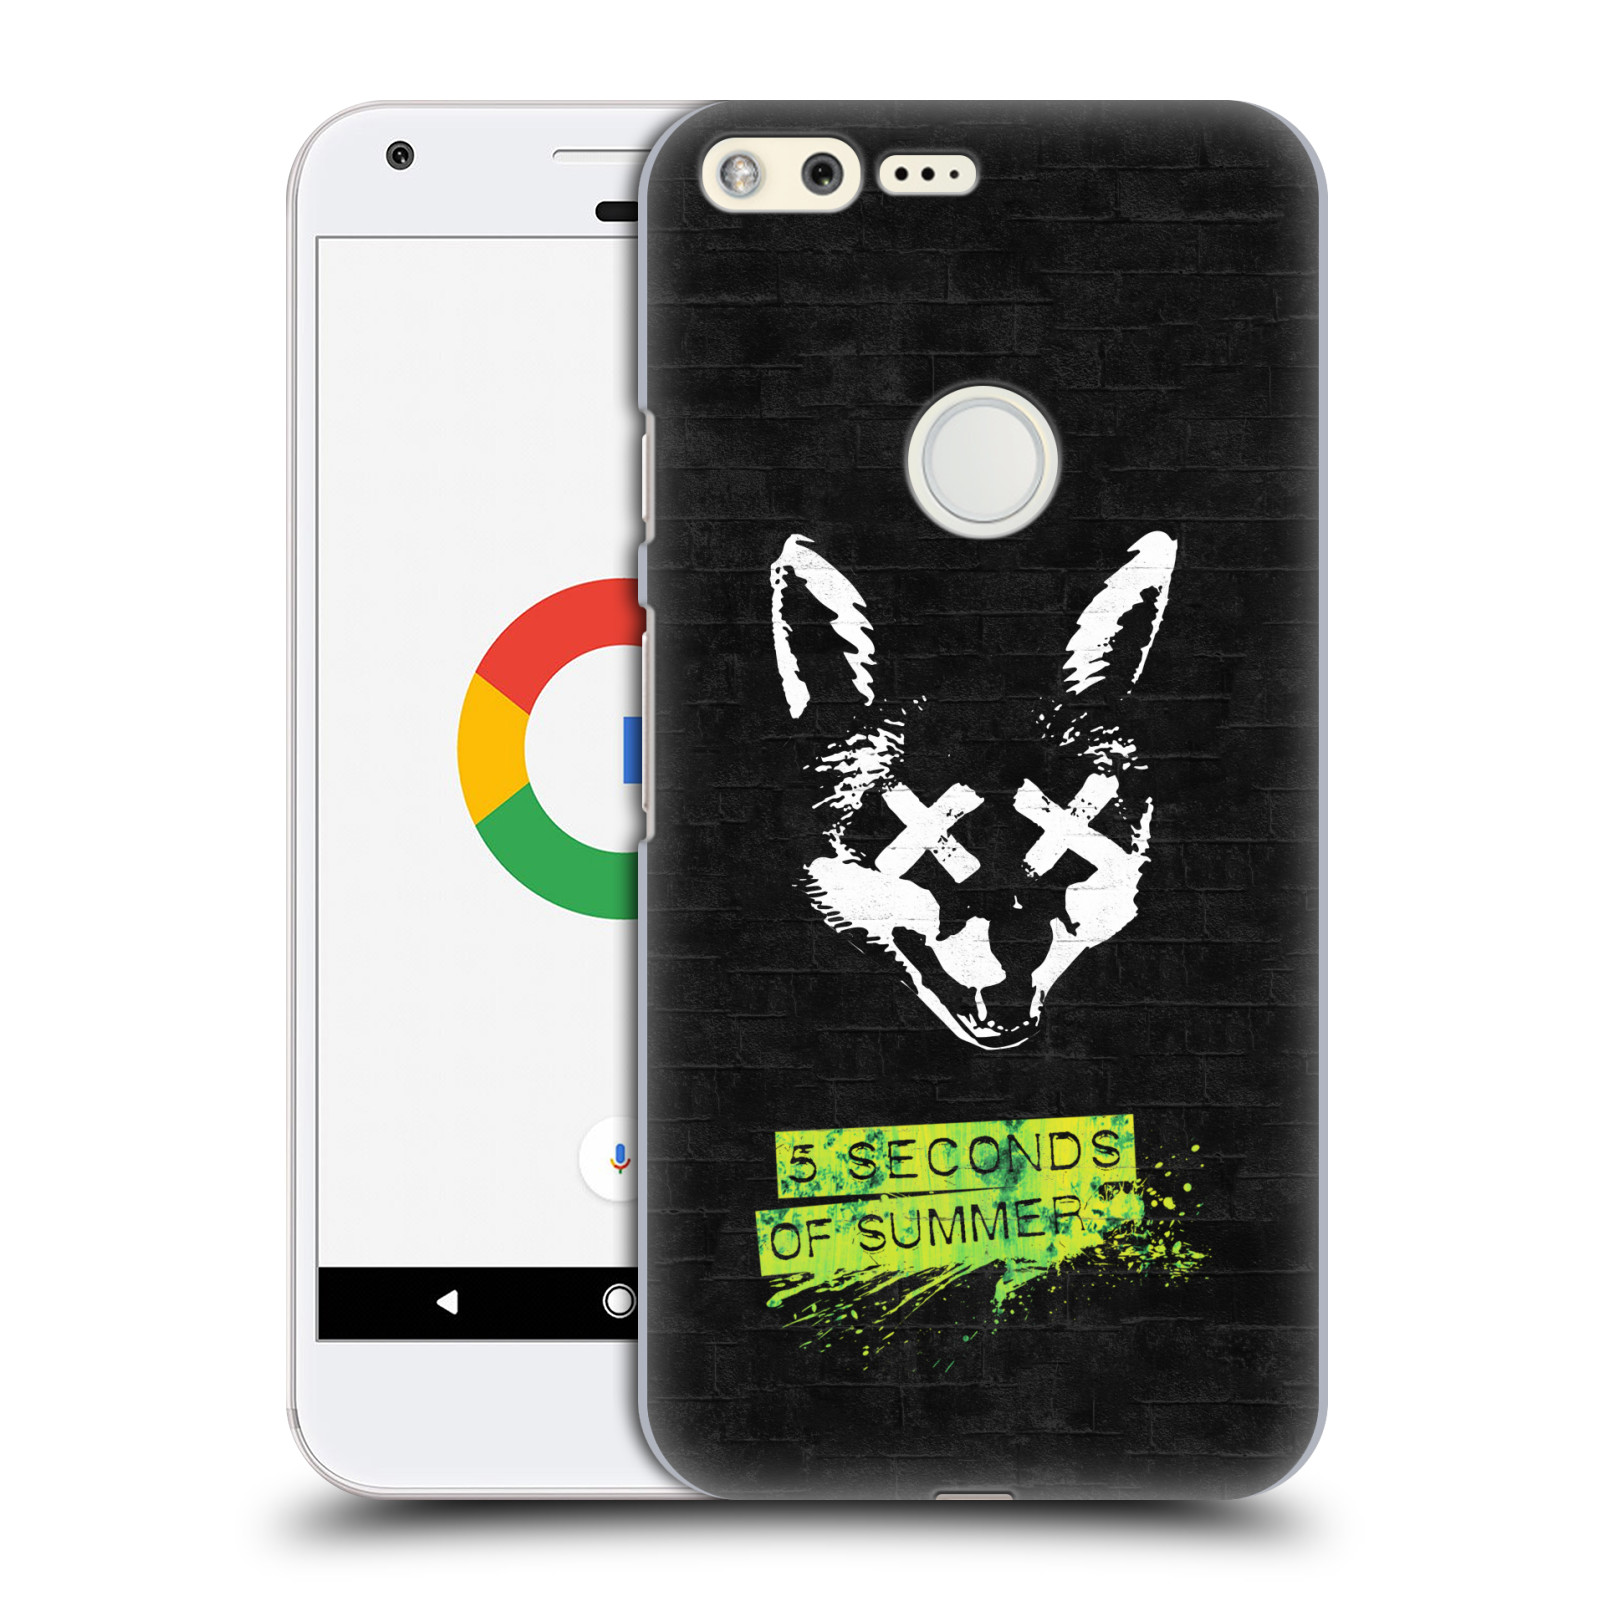 Plastové pouzdro na mobil Google Pixel HEAD CASE 5 Seconds of Summer - Fox